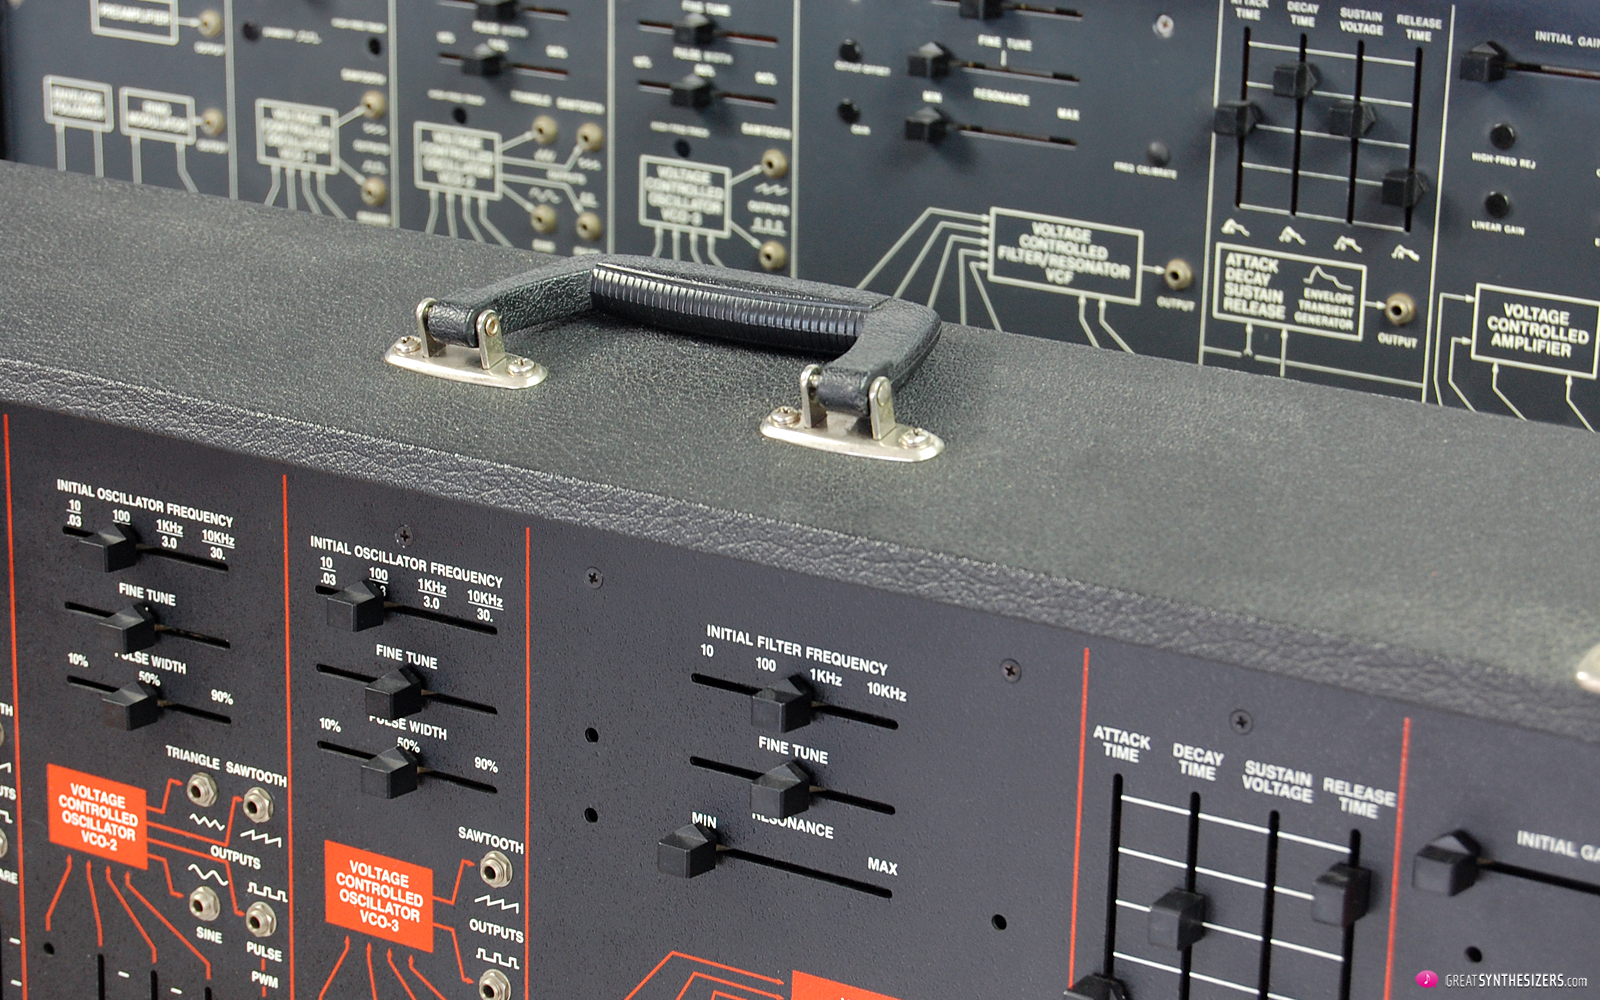 ARP 2600 Synthesizer